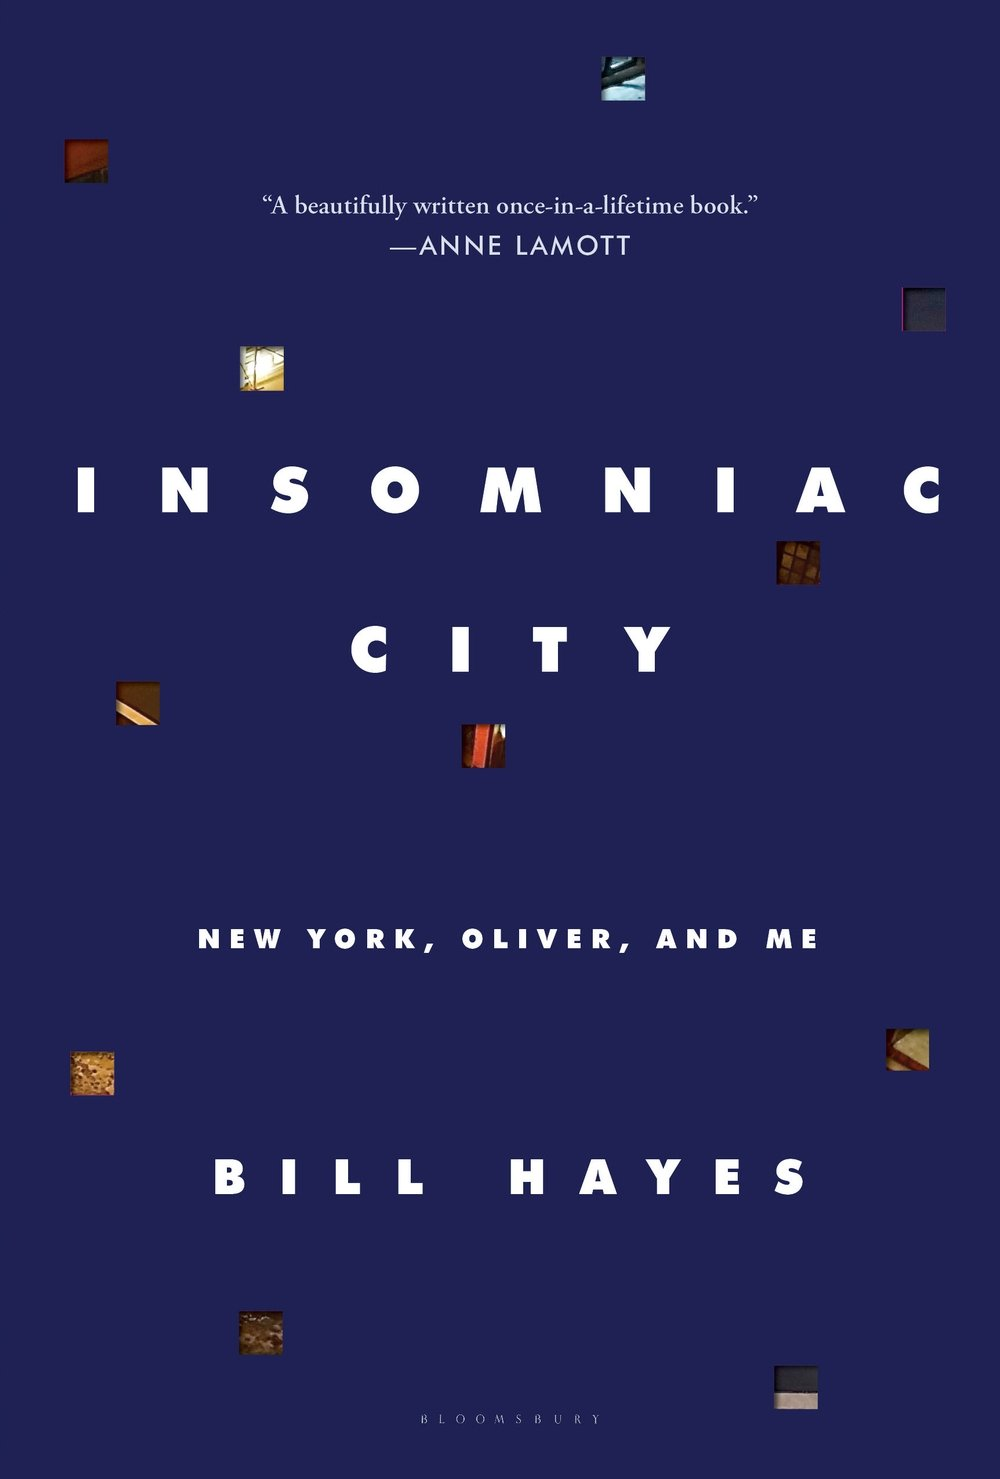 gratitude oliver sacks 9780345811363 books ca insomniac city new york oliver and me